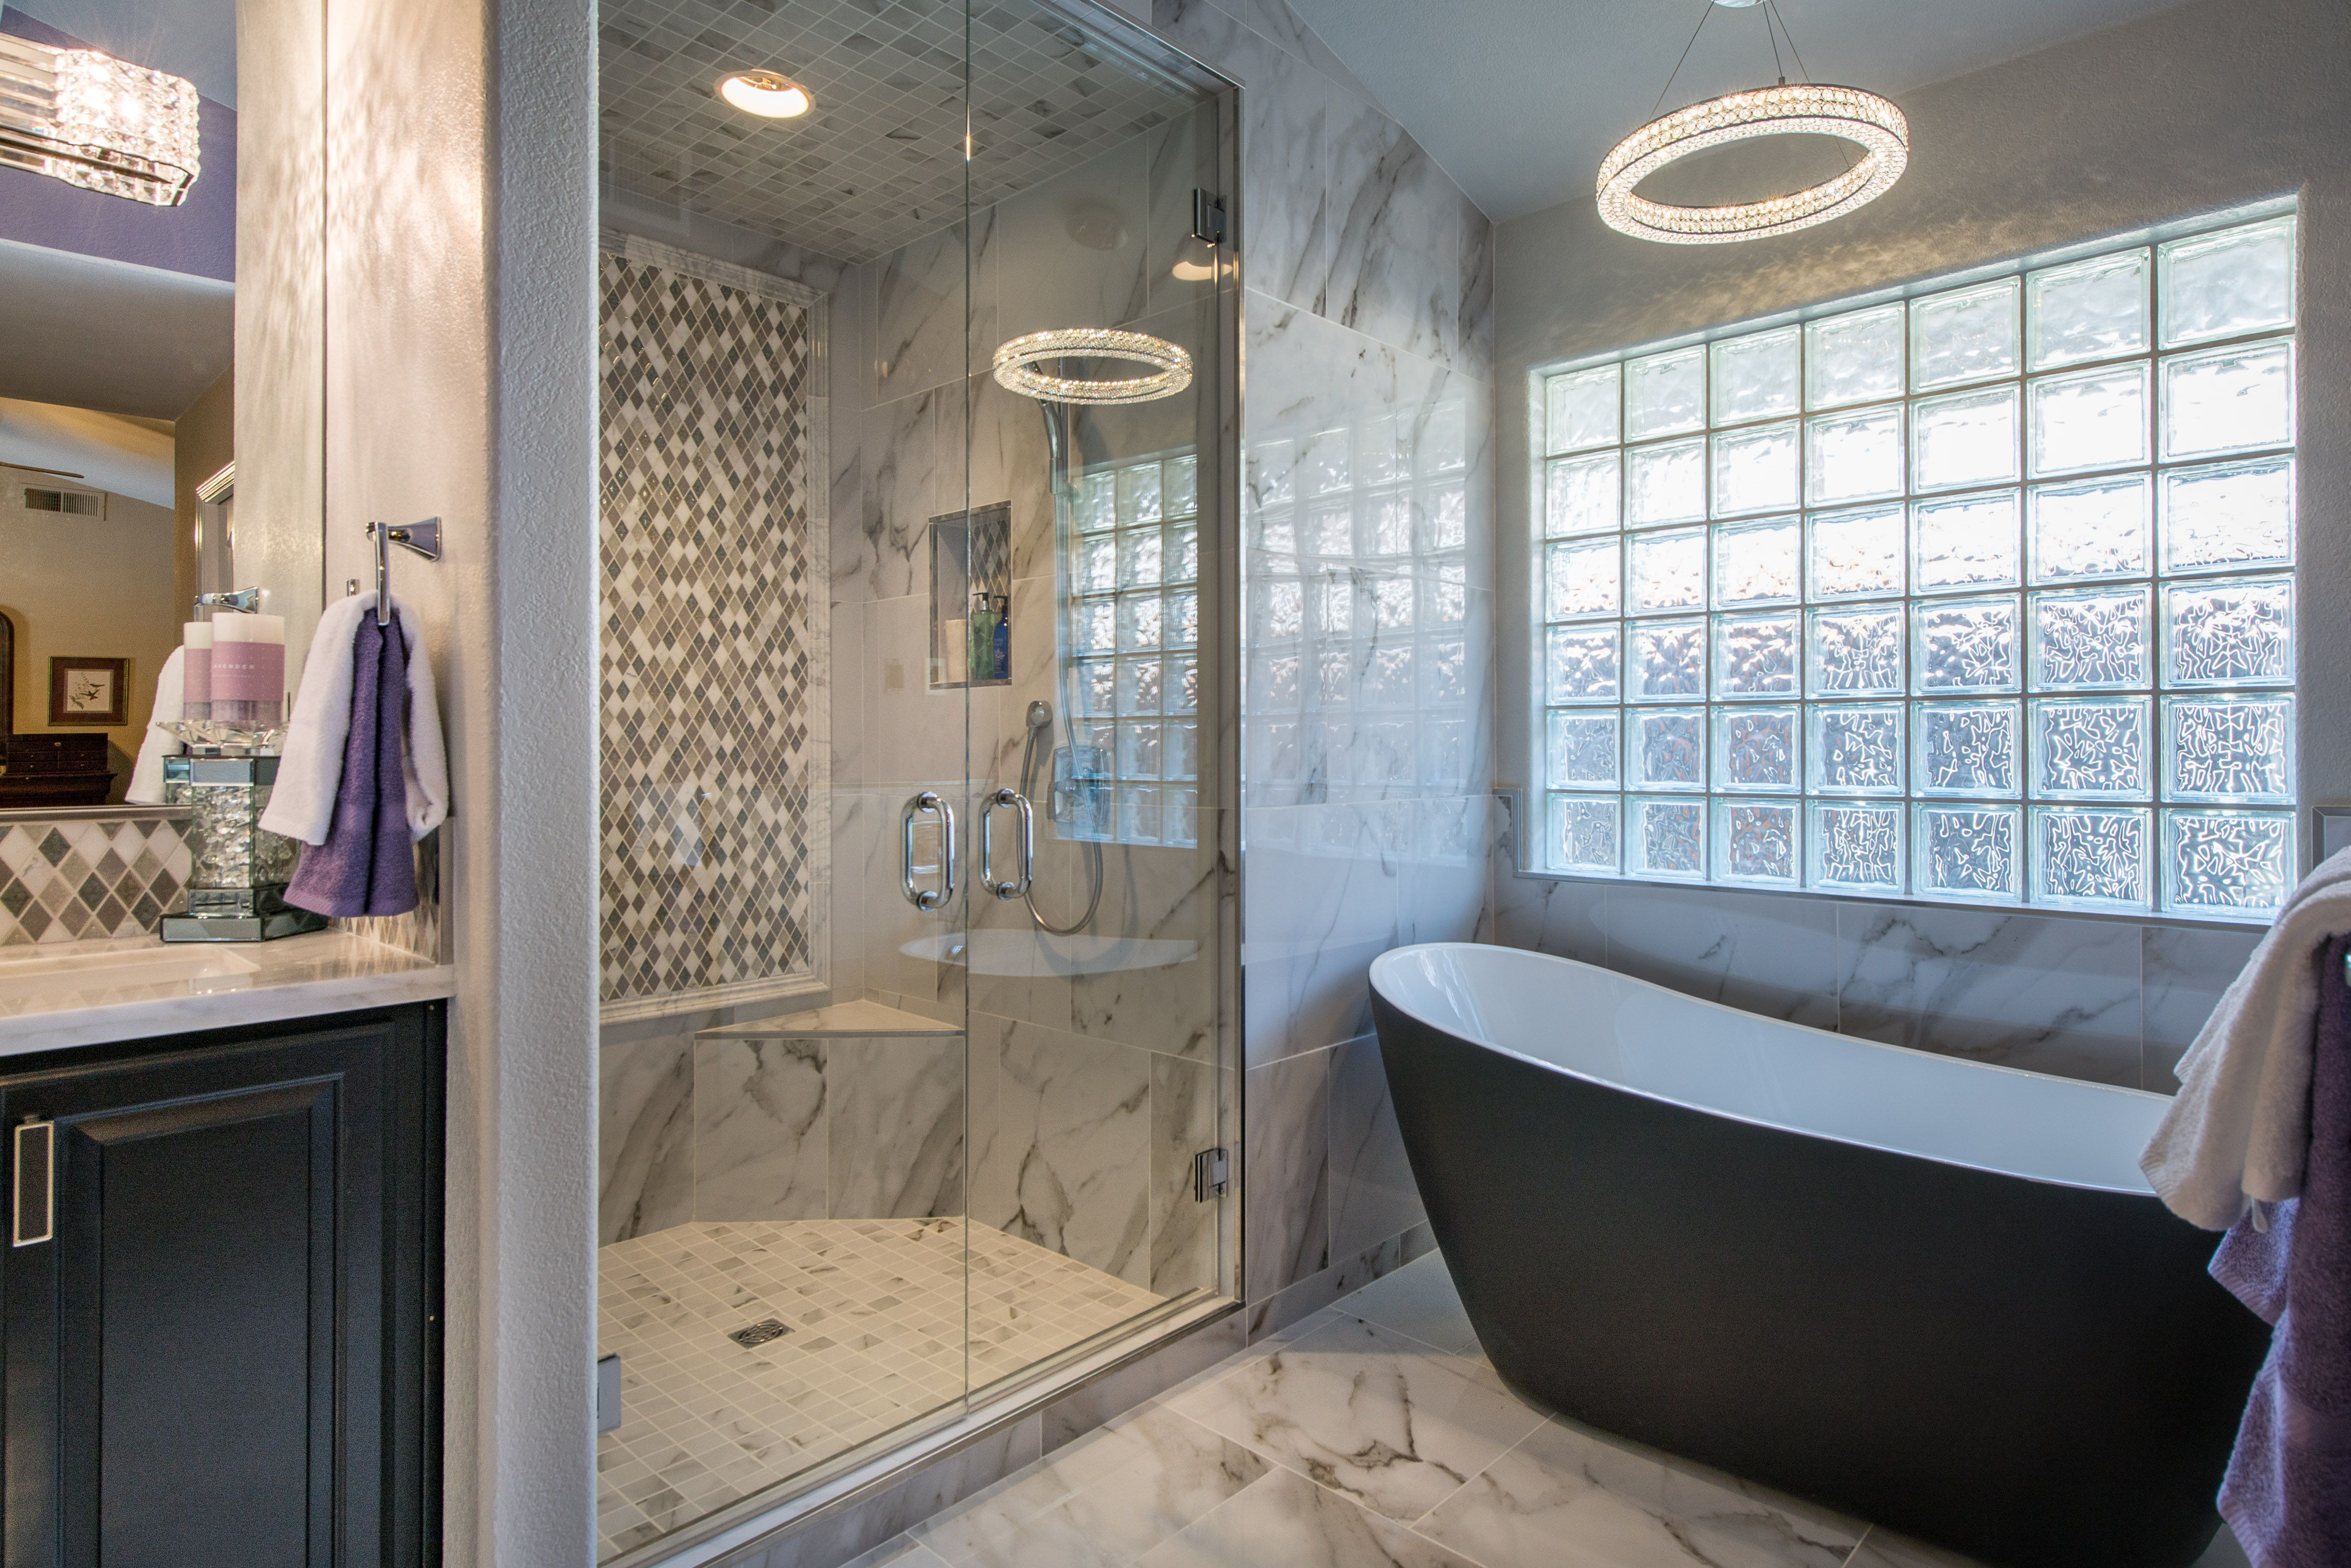 Pin By Quick Bath Solutions On Bathroom Remodel Vegas Style - Quick bathroom remodel